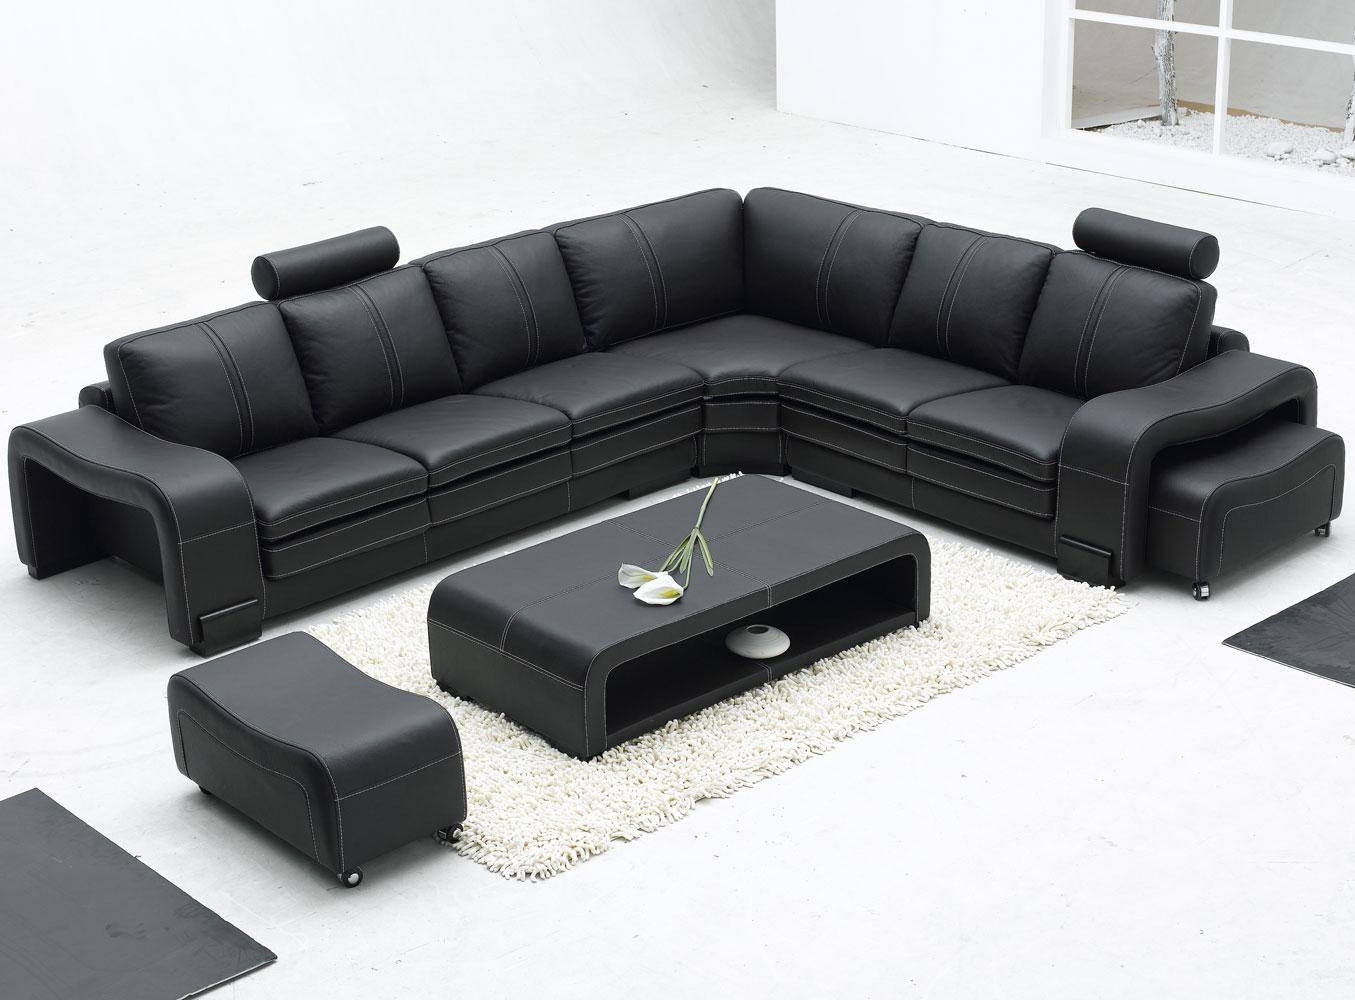 Contemporary Black Leather Sofa Photo - 14: Beautiful Pictures Of pertaining to Contemporary Black Leather Sofas (Image 9 of 30)